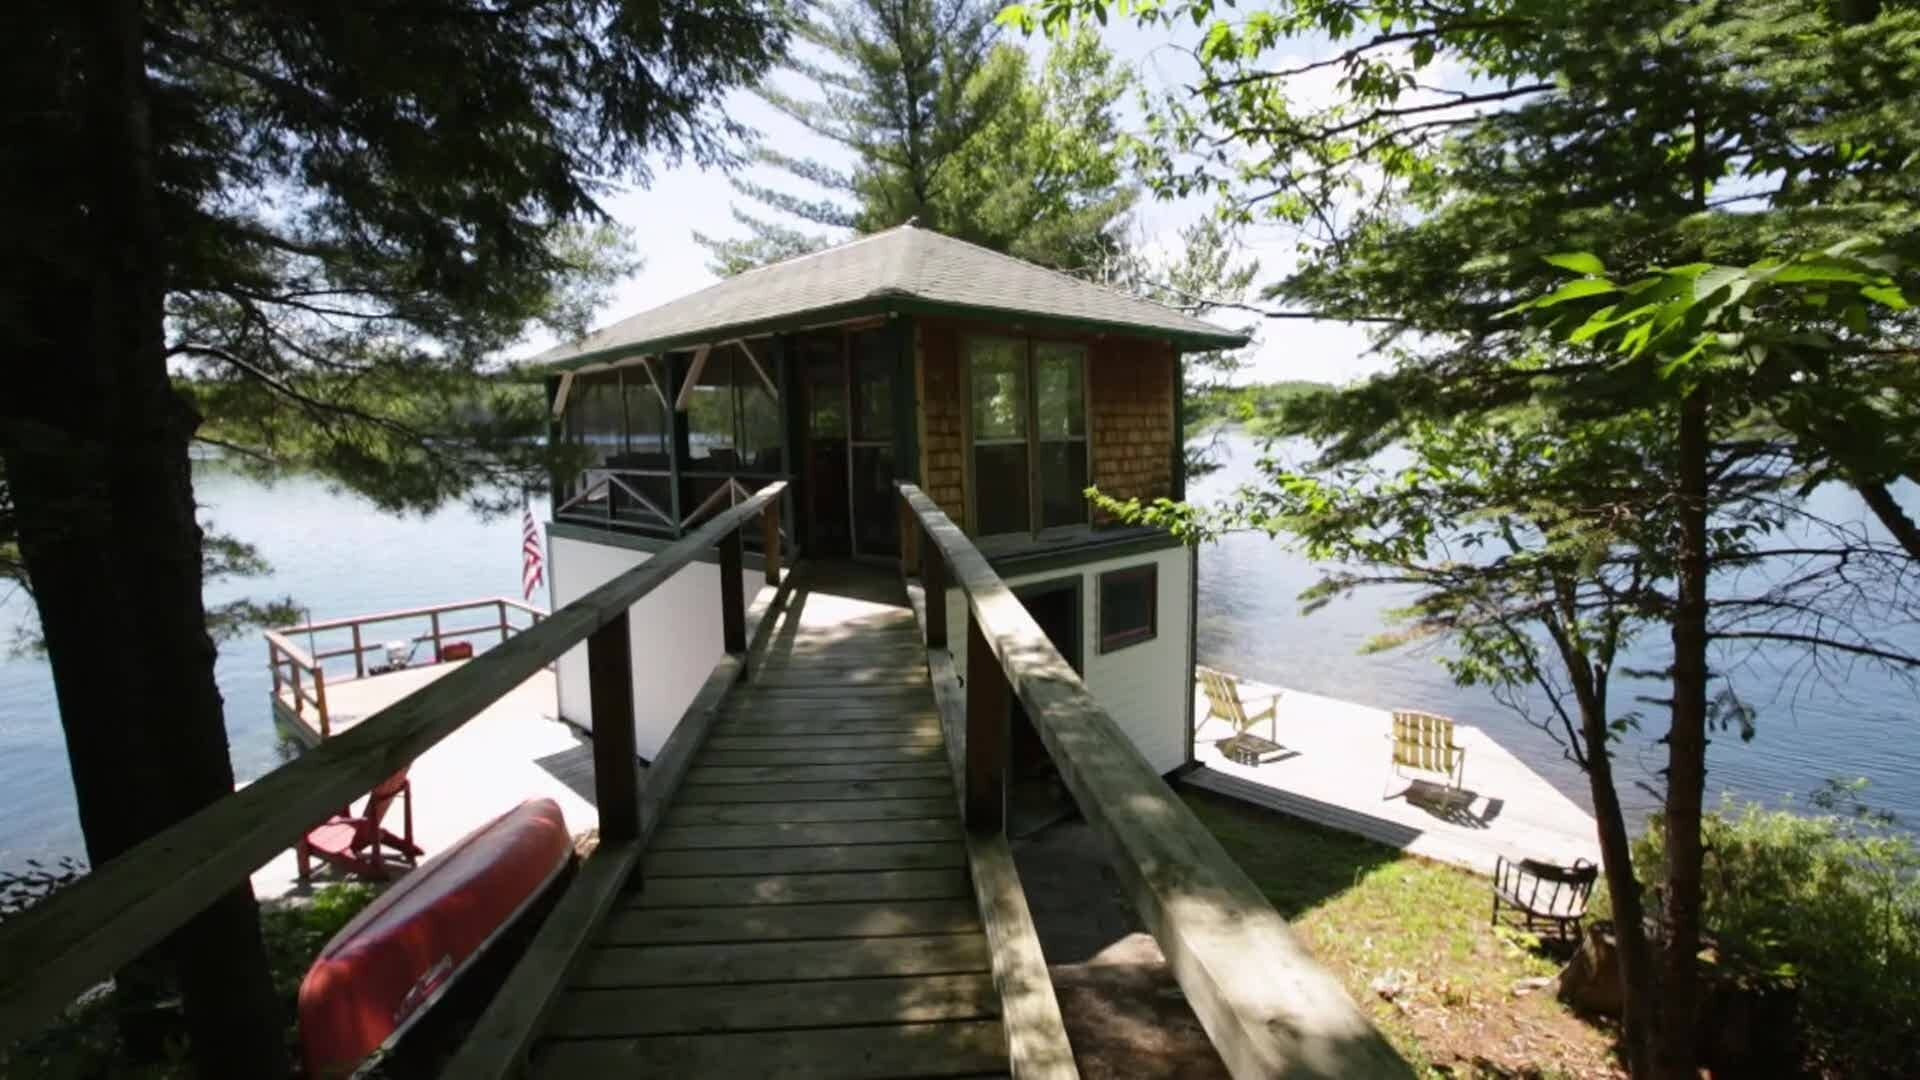 Lakefront Bargain Hunt — s2017e03 — Searching for an Adirondack Escape in New York